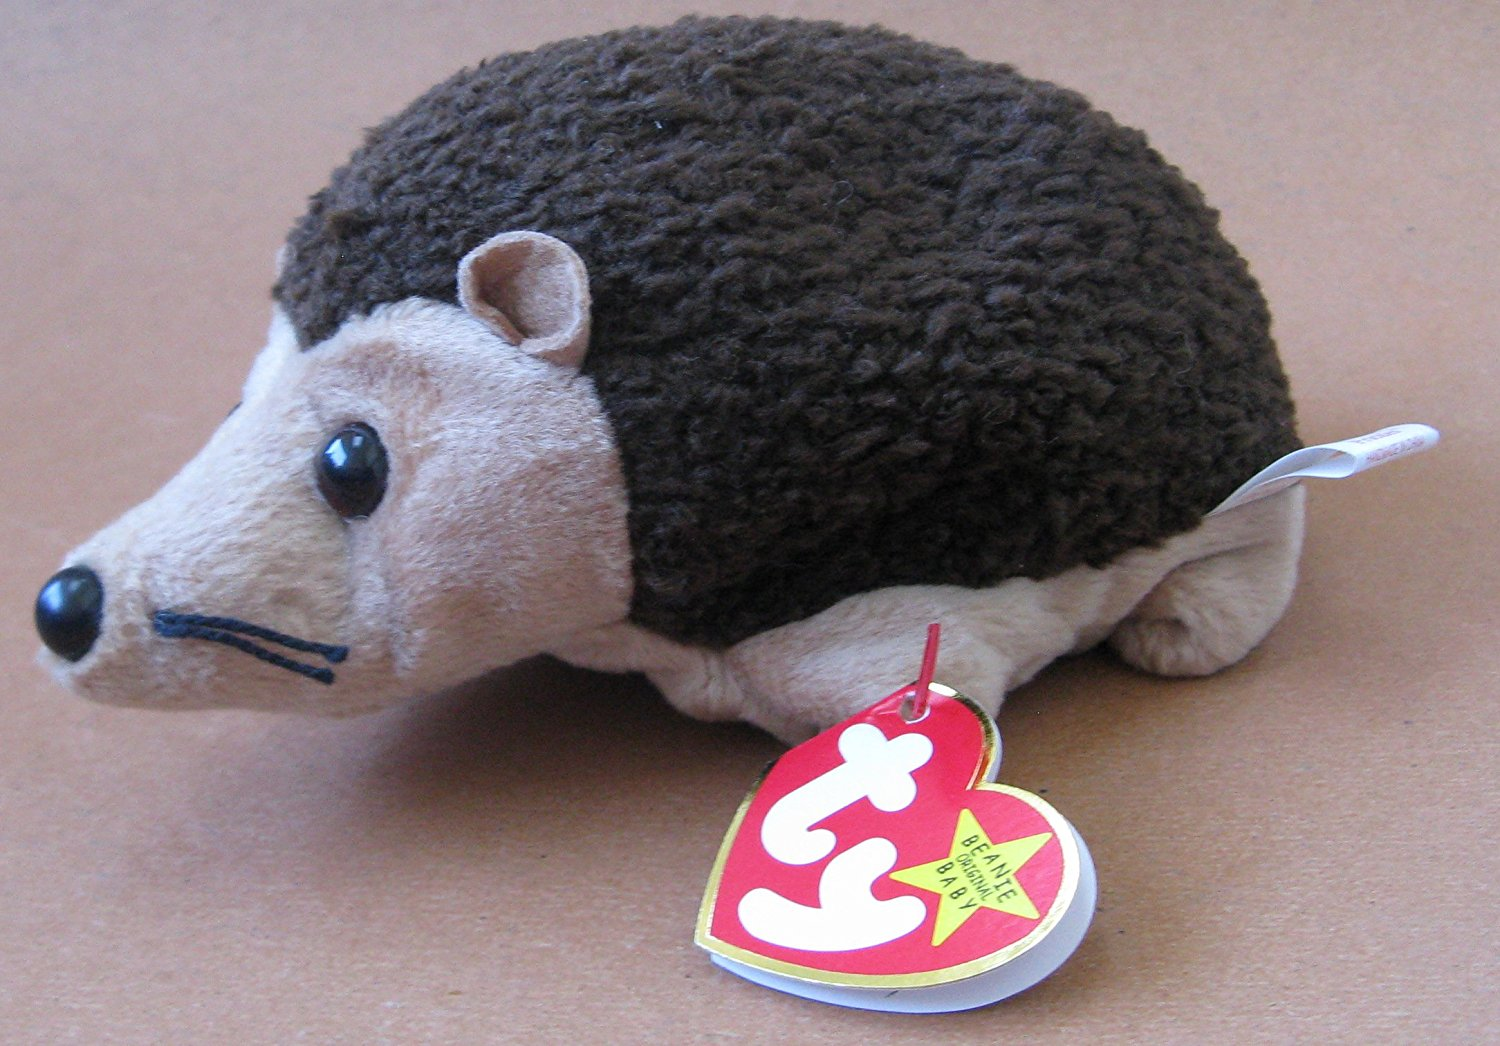 71e39471d6d Buy TY Beanie Baby - PRICKLES the Hedgehog in Cheap Price on Alibaba.com